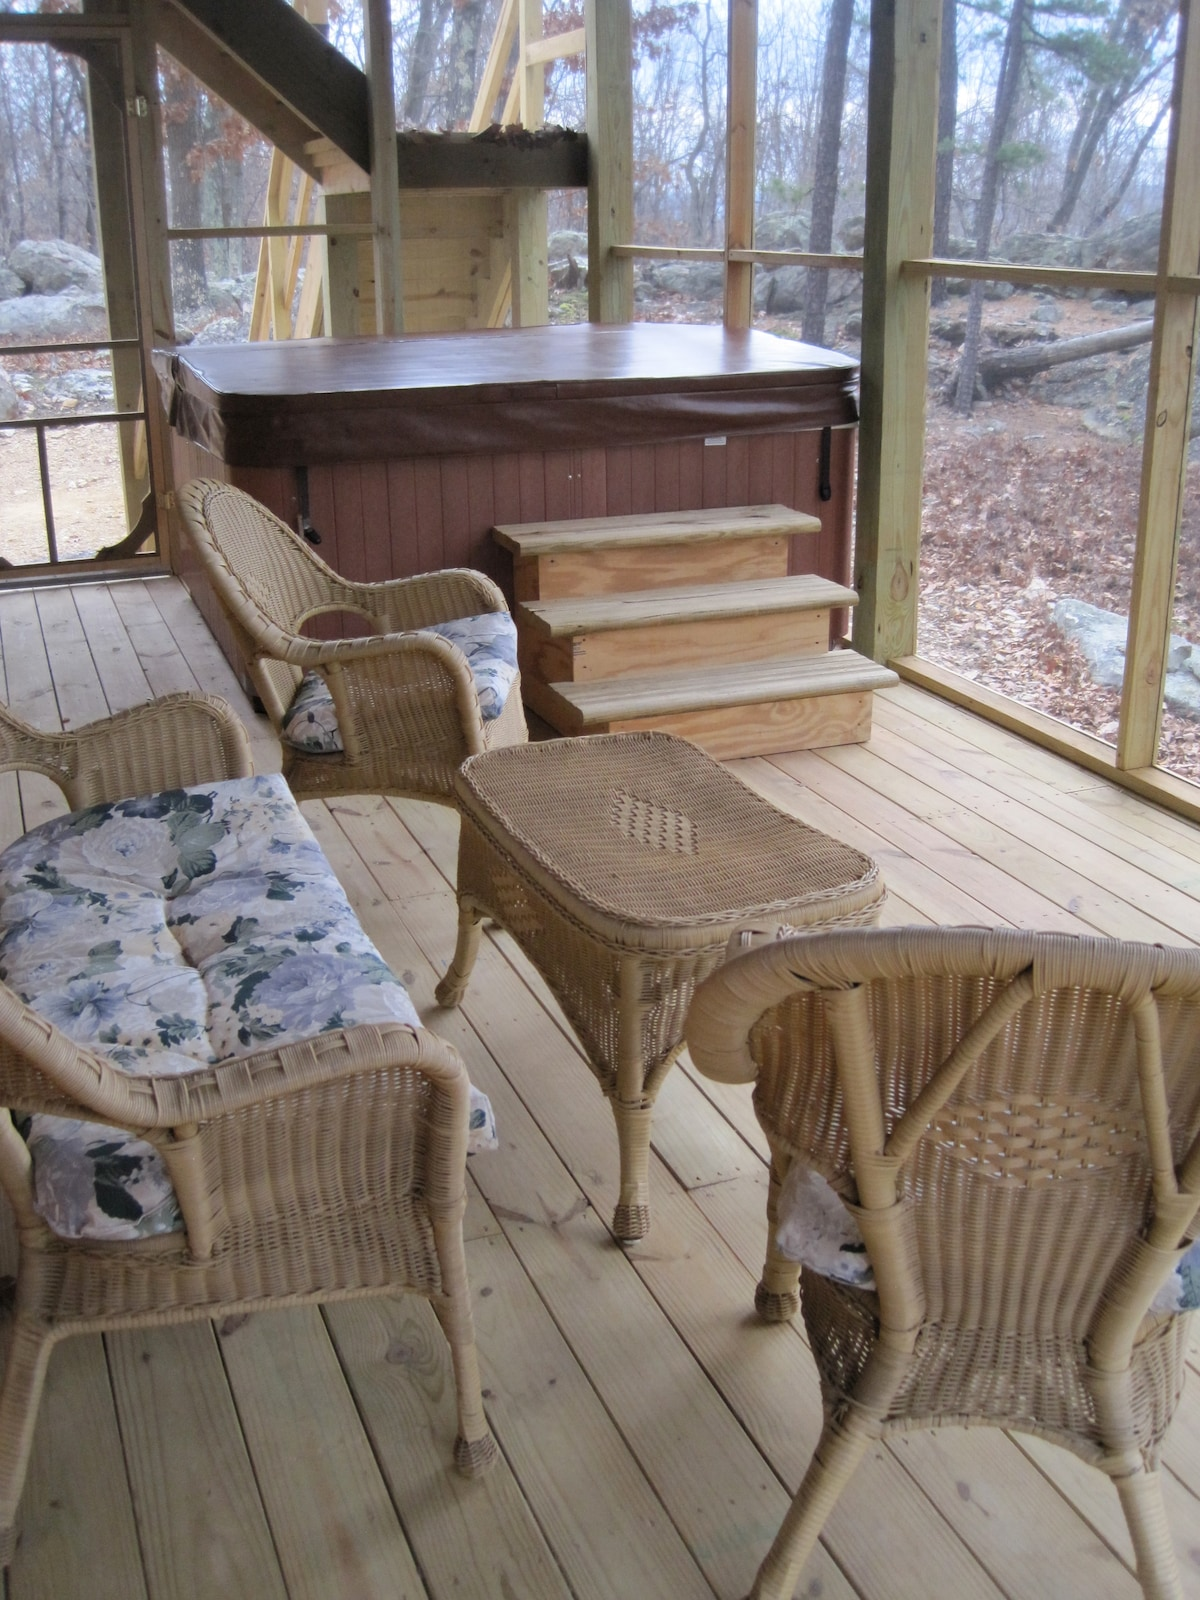 Six-Person Hot Tub and Screened Porch Wicker Sitting Area